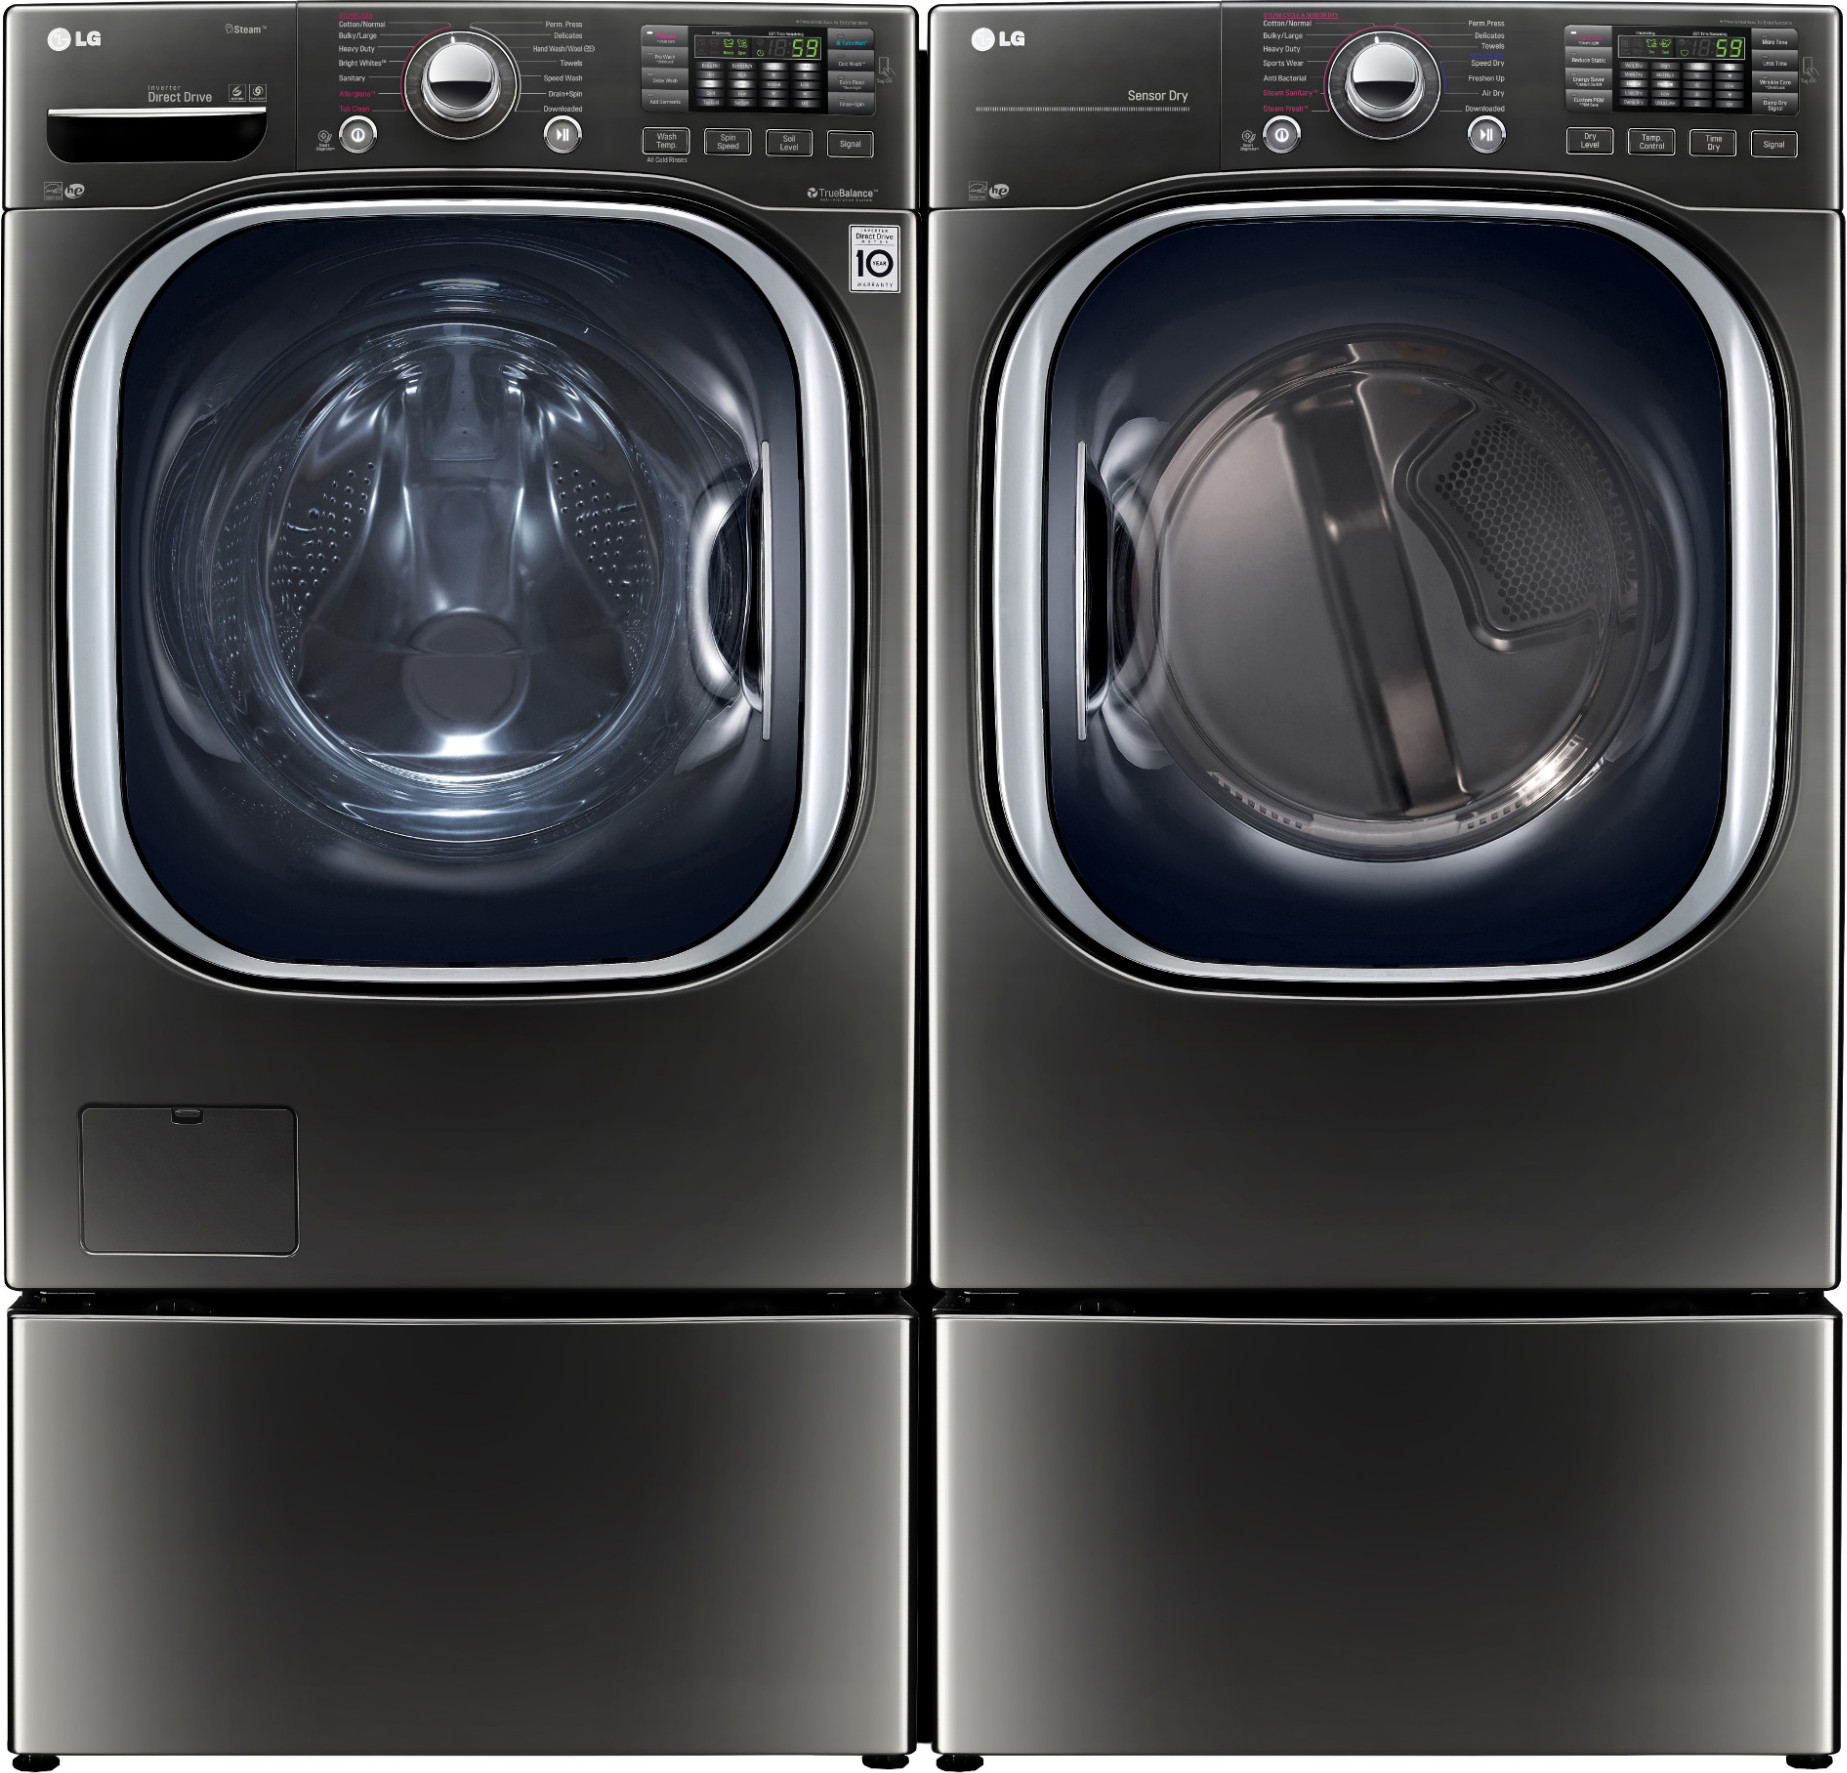 diy laundry dryer projects it ana home do yourself pedestal from pin pedestals washer